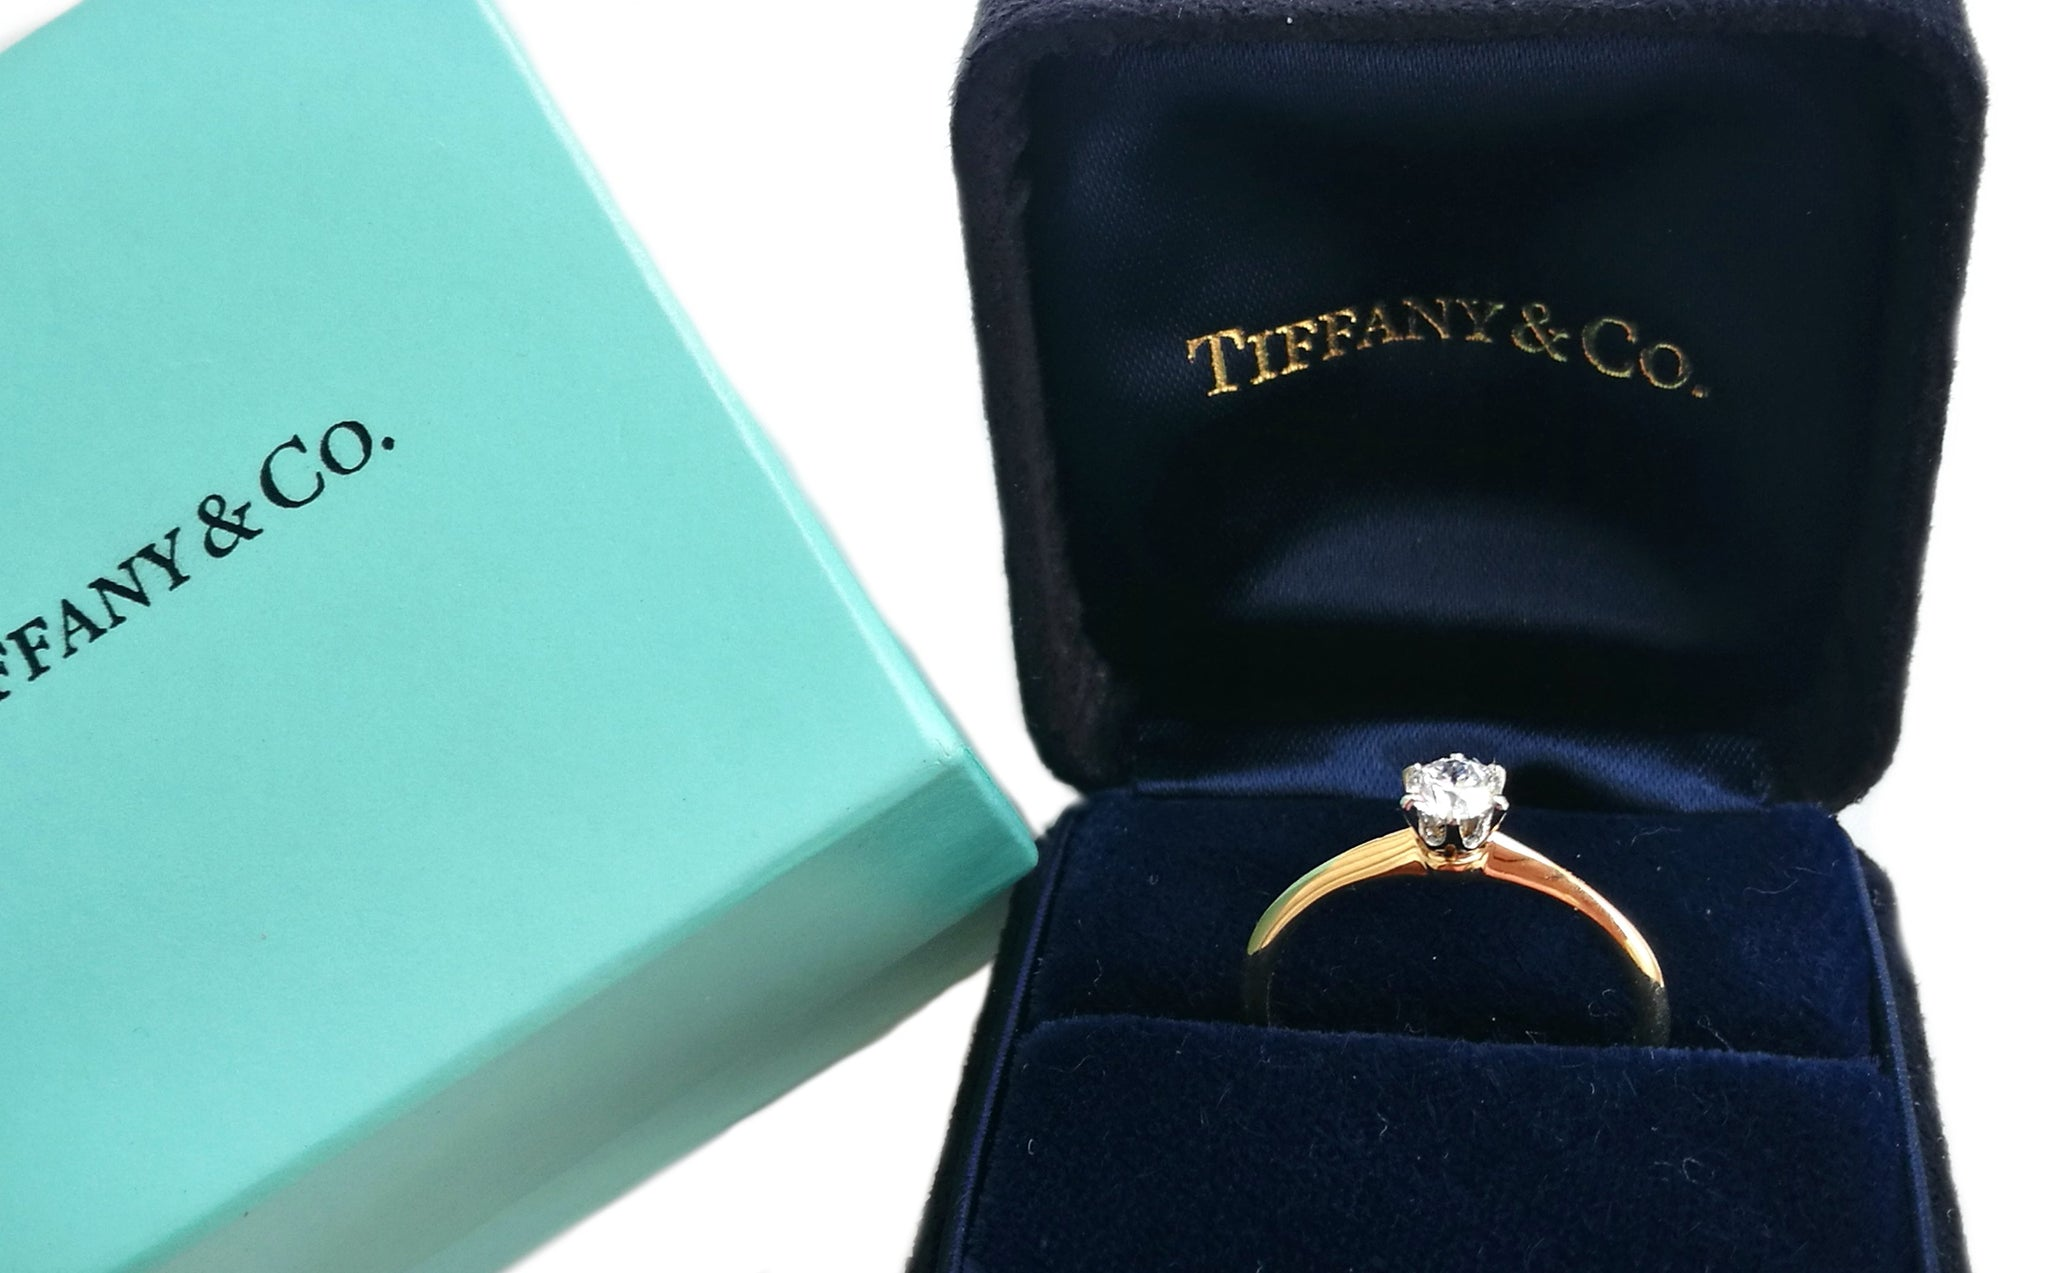 Tiffany & Co .23ct Round Brilliant Diamond Engagement Ring SZ J 1/2